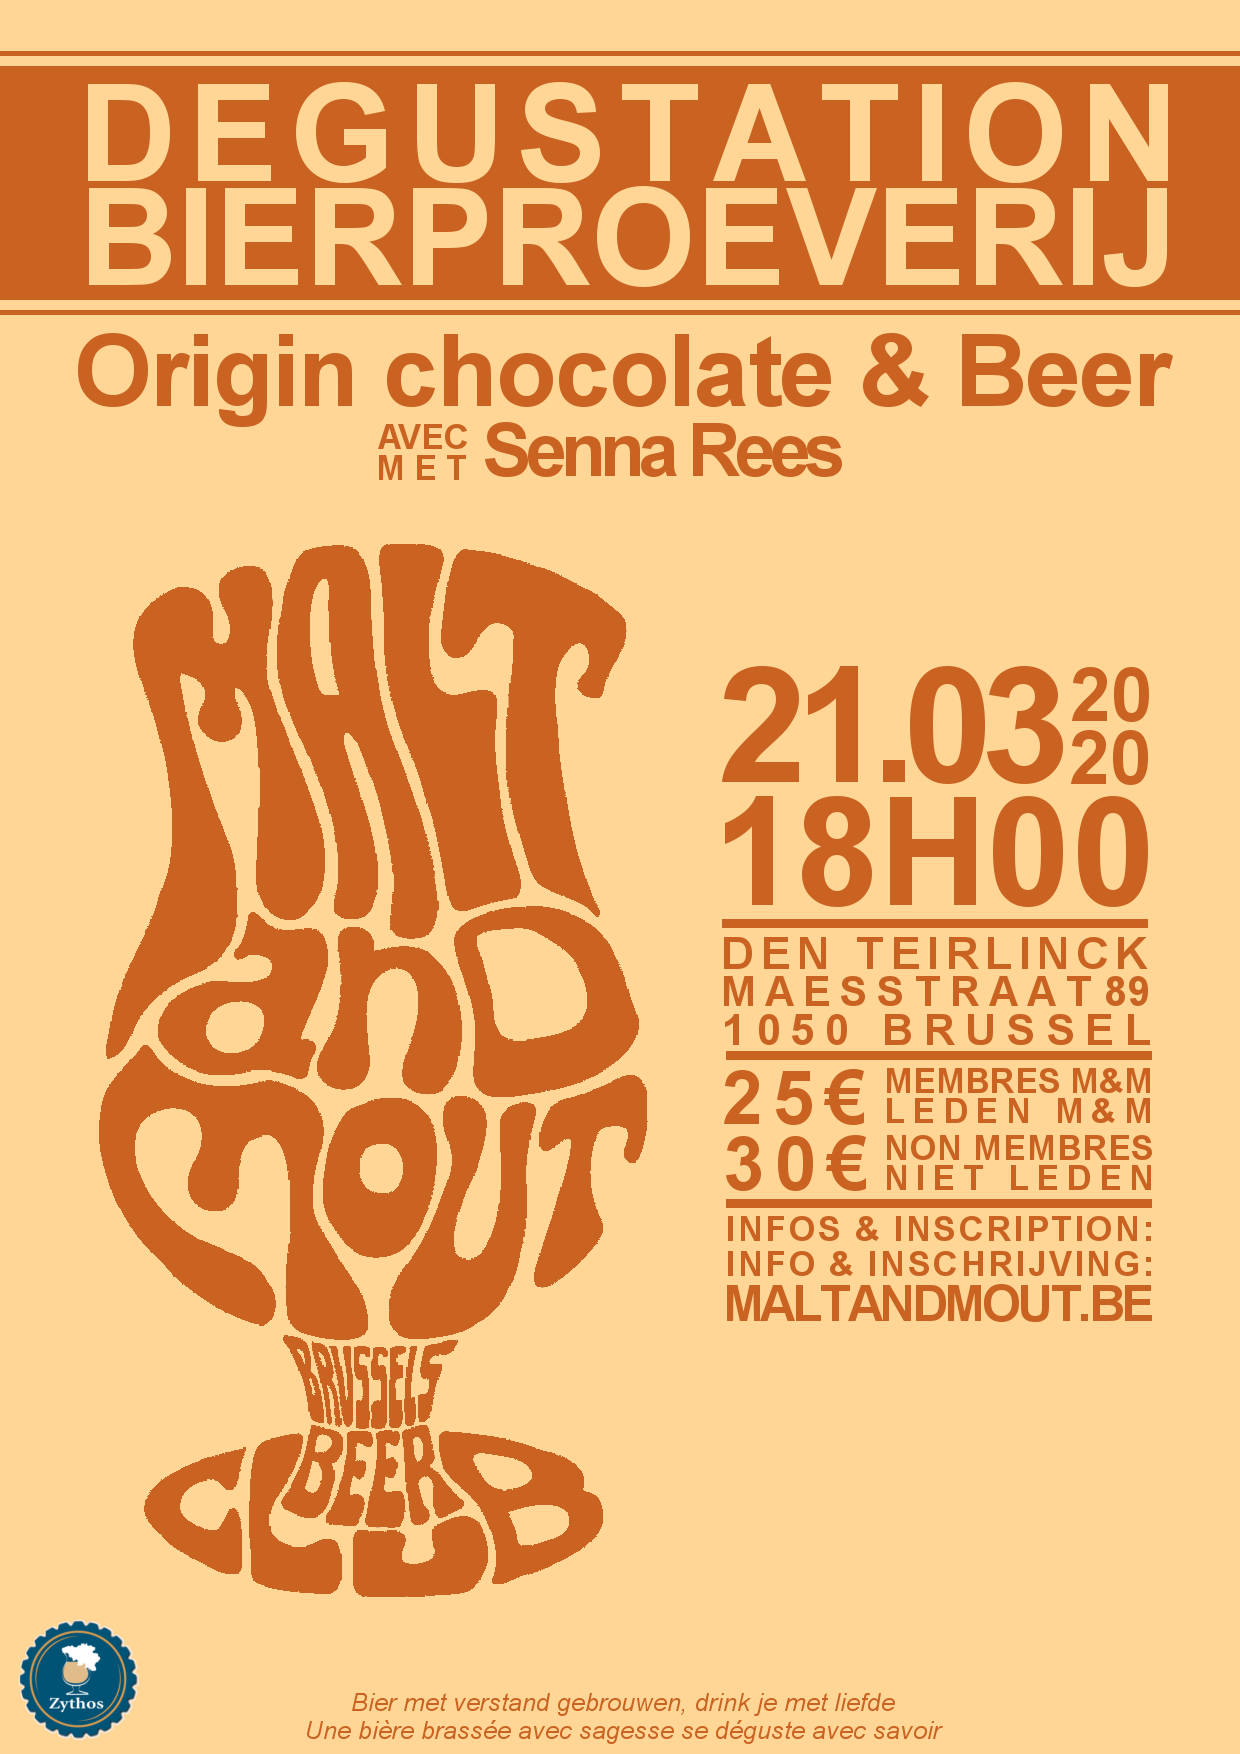 Origin Chocolate & Beer